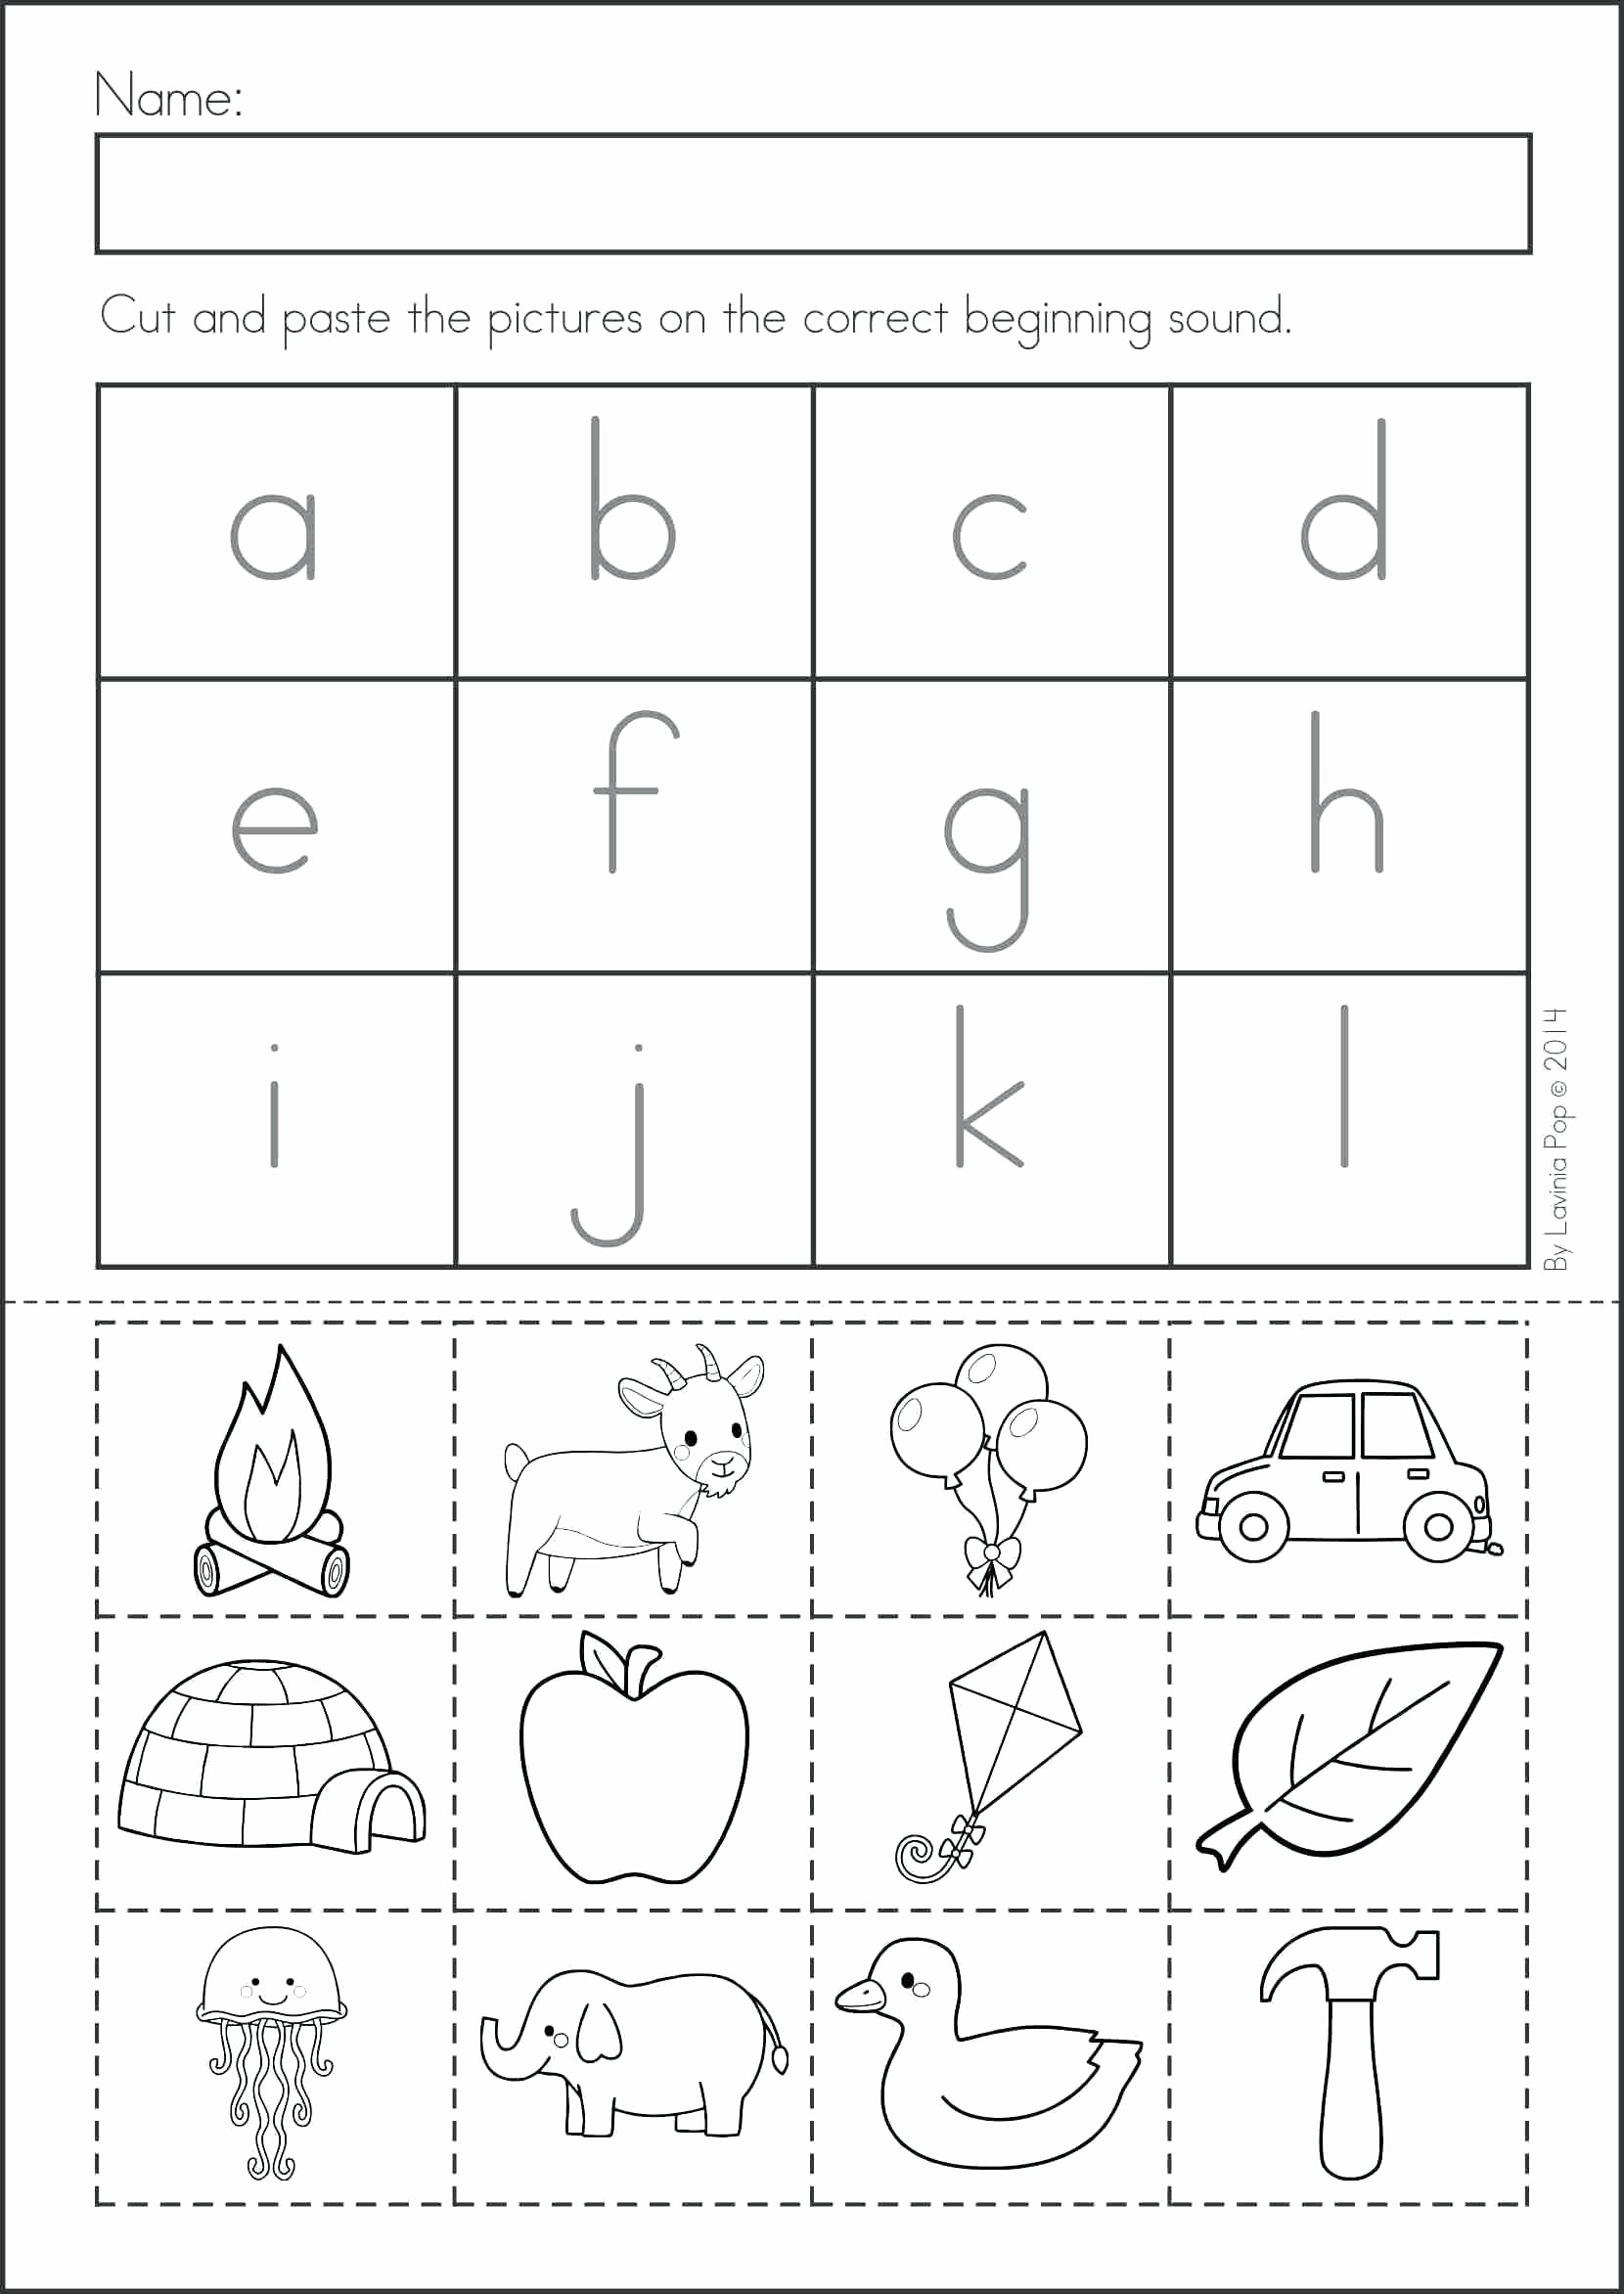 Kindergarten Cut and Paste Worksheets Printable Pin On A